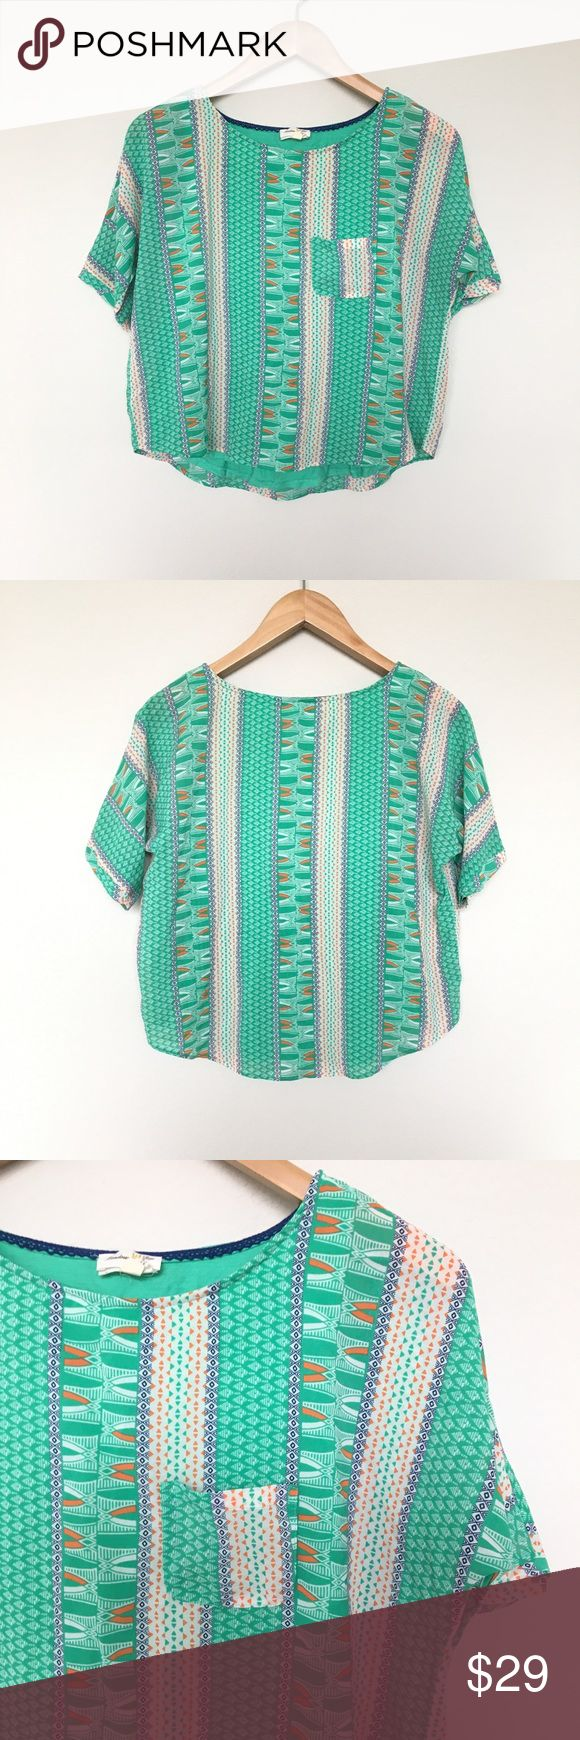 Meadow Rue Zane Geo Print Double Layer Tee 100% polyester (top layer).  60% cotton, 40% modal (bottom layer).  Gorgeous green, white and orange geo printed blouse.  Double layered that peeks out from the bottom.  Short sleeve.  Loose fit through body.  Open, slouchy chest pocket. Excellent pre-owned condition. Anthropologie Tops Blouses